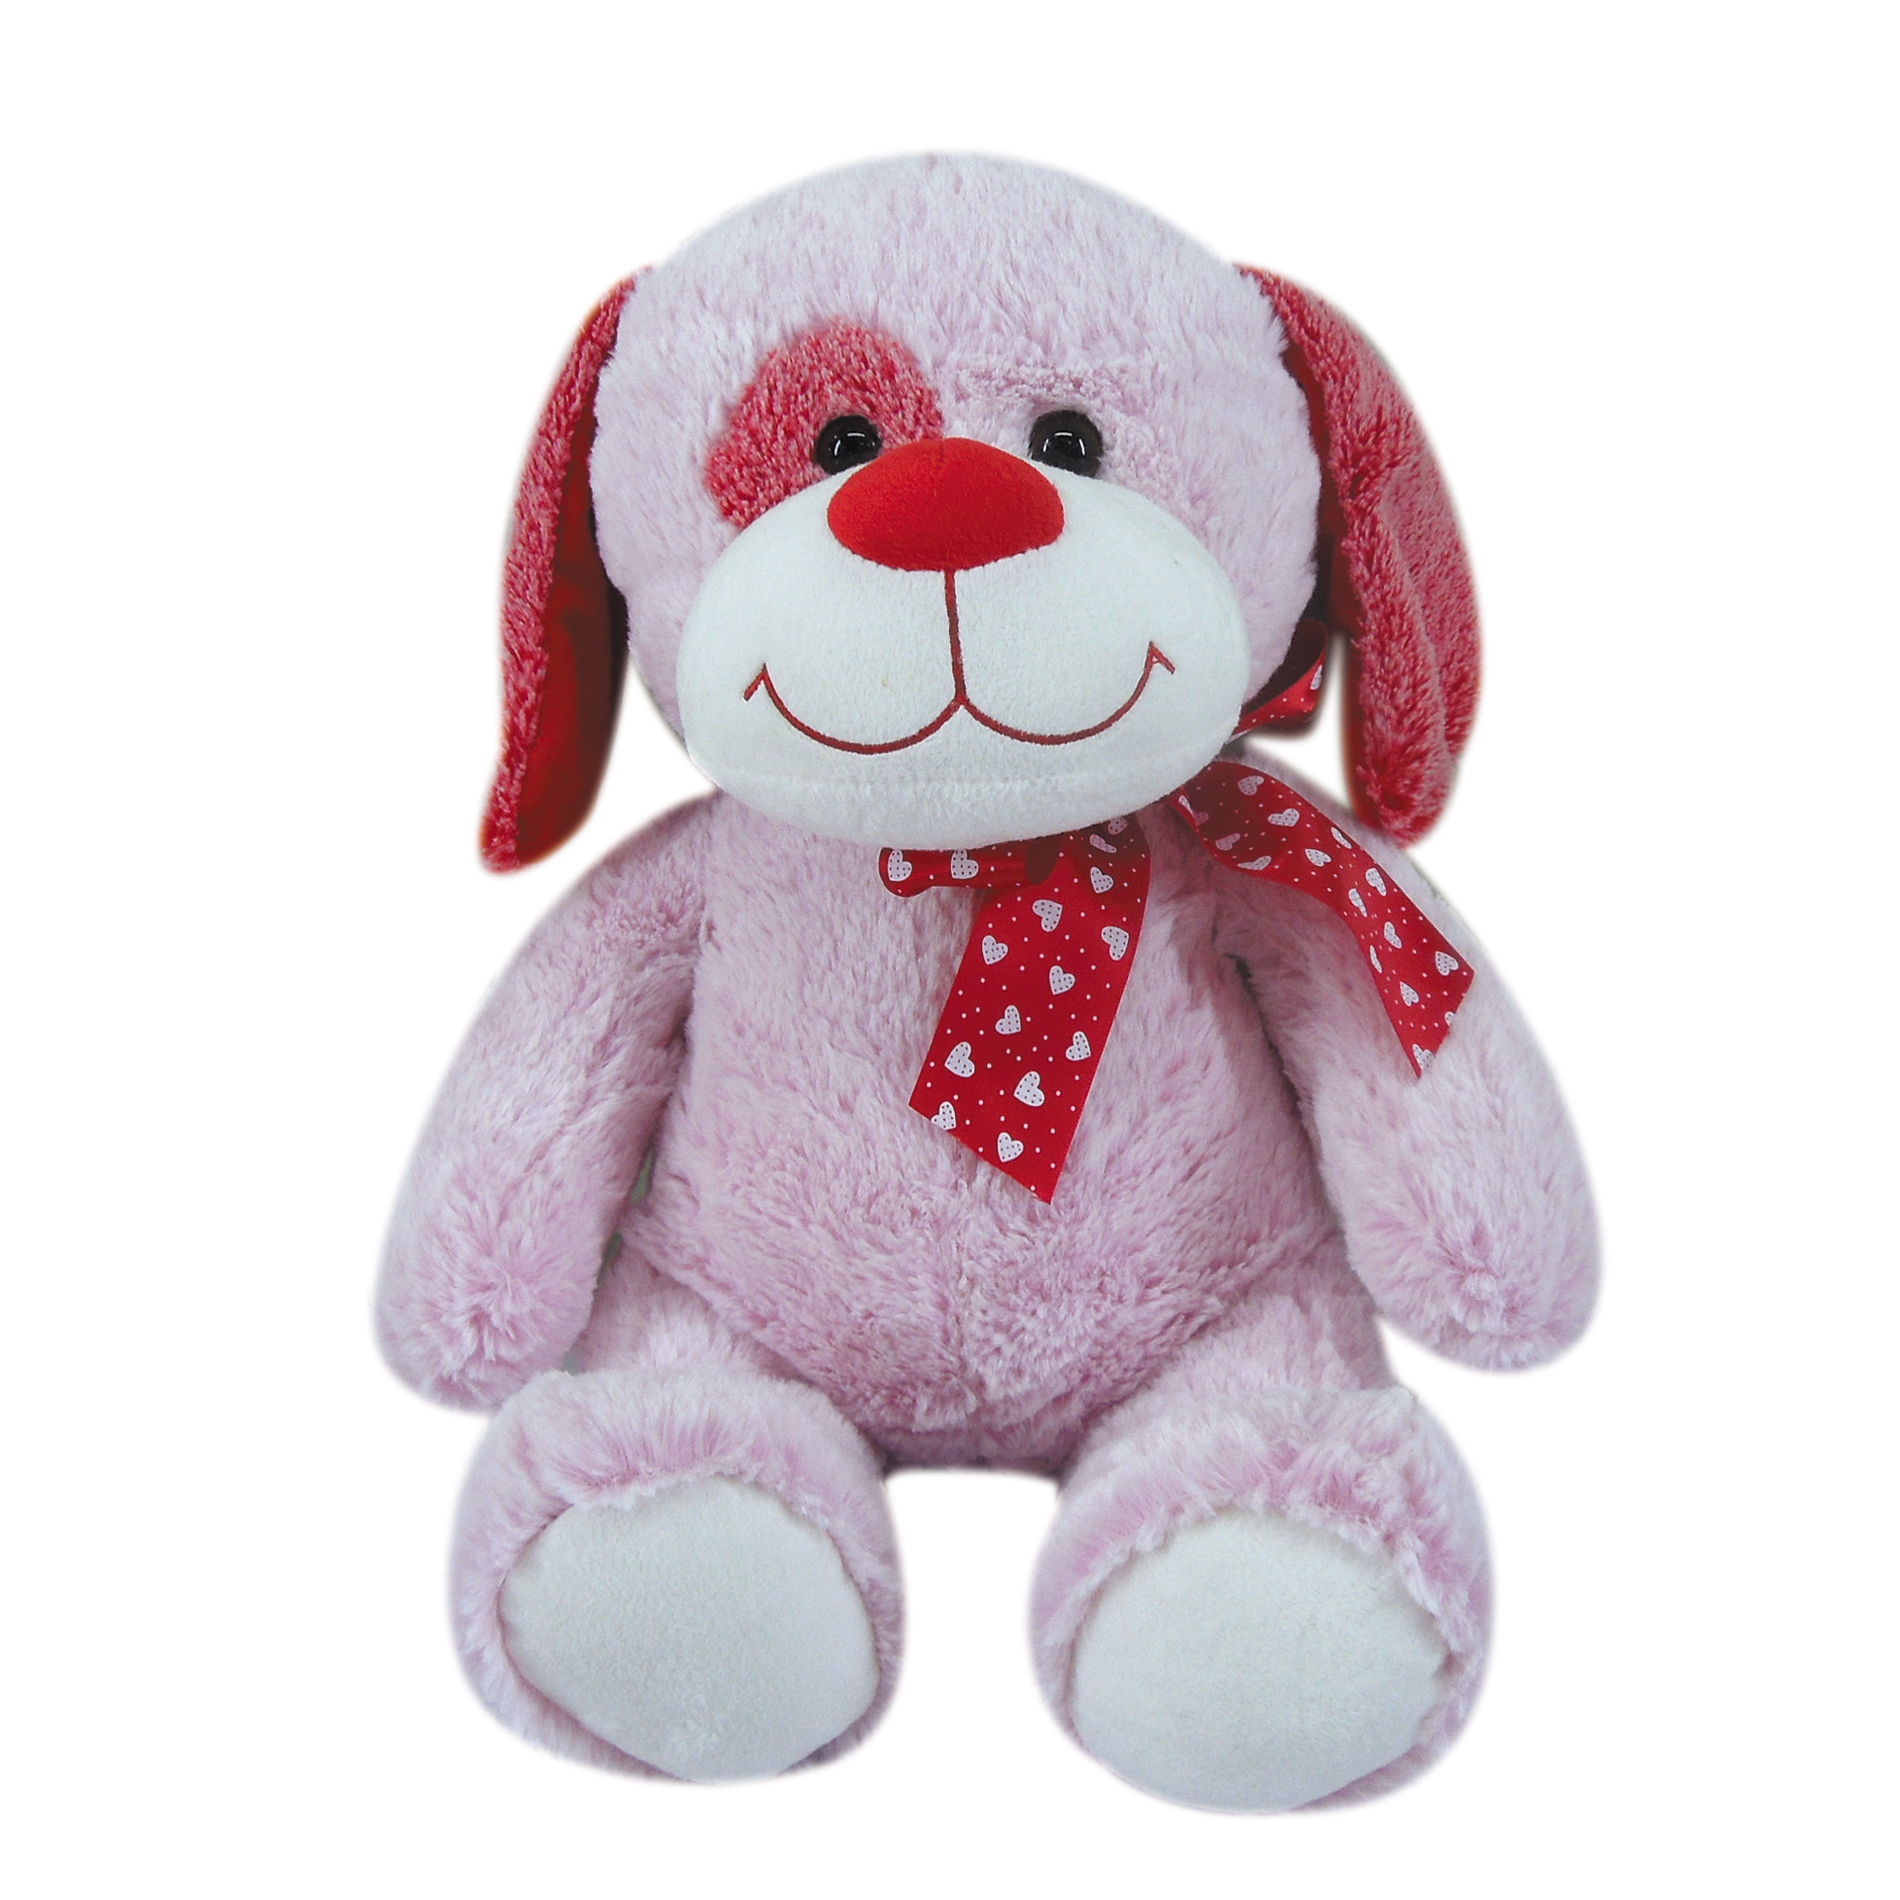 Valentine S Day Dog Toys : Quot valentine s day stuffed animal pink dog